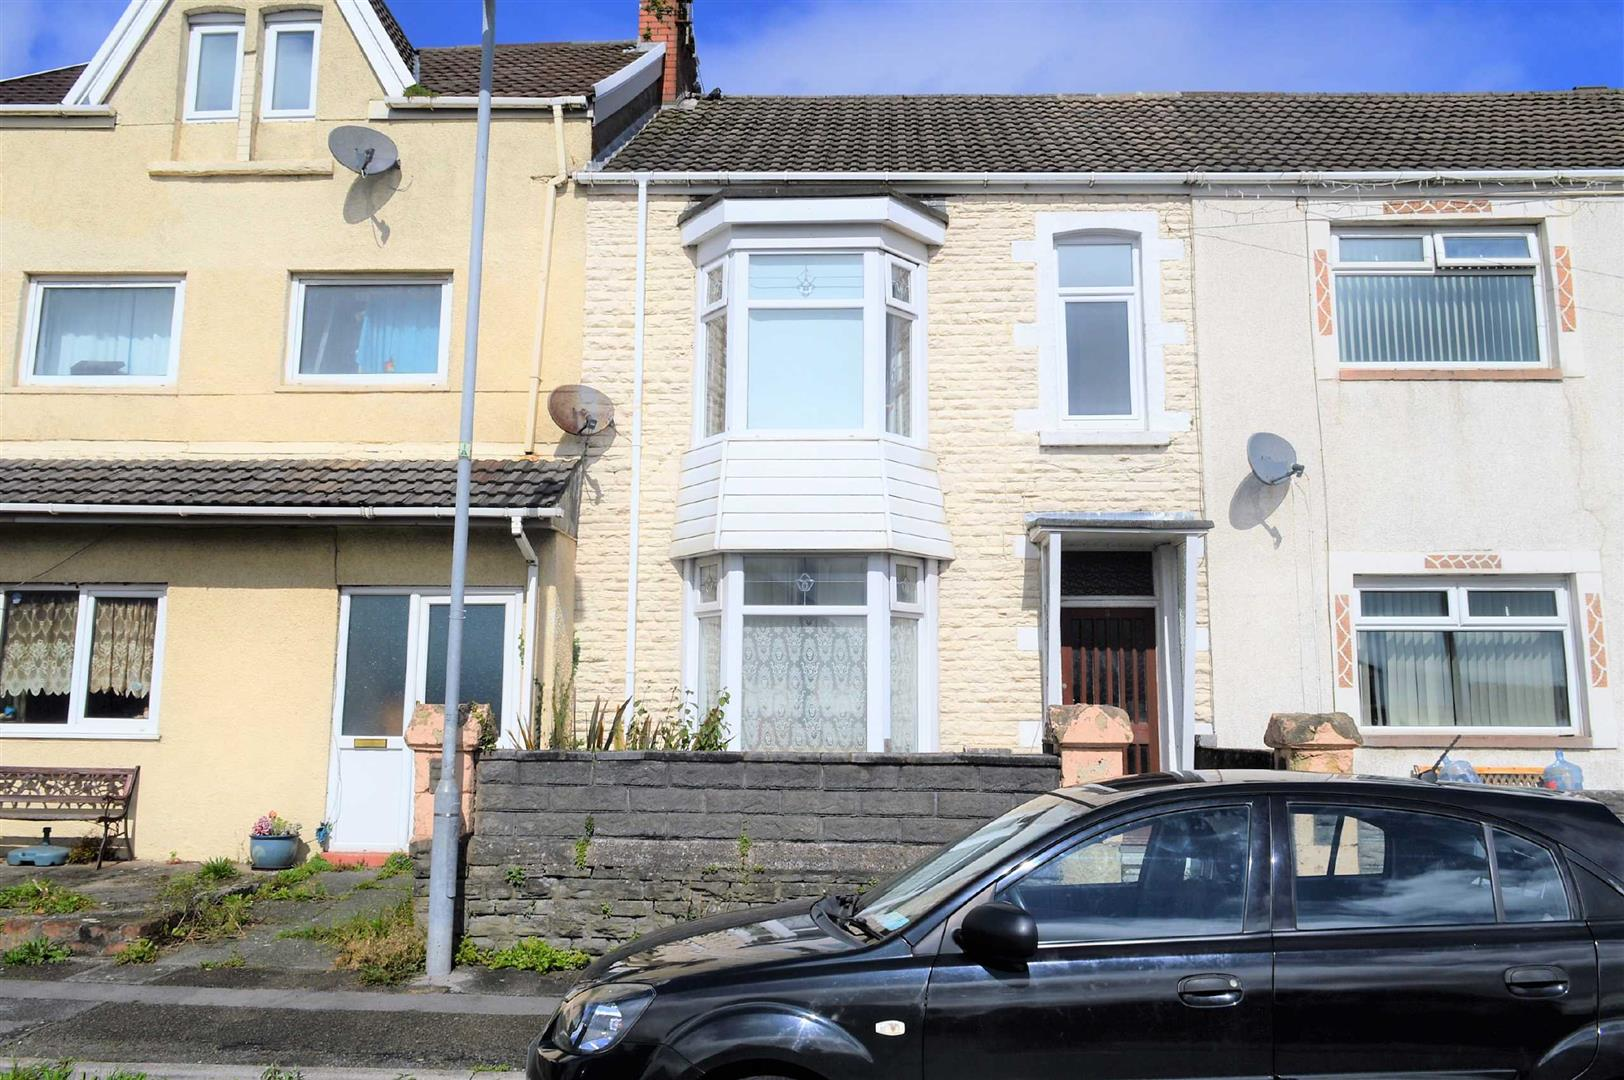 Wern Fawr Road, Port Tennant, Swansea, SA1 8LQ